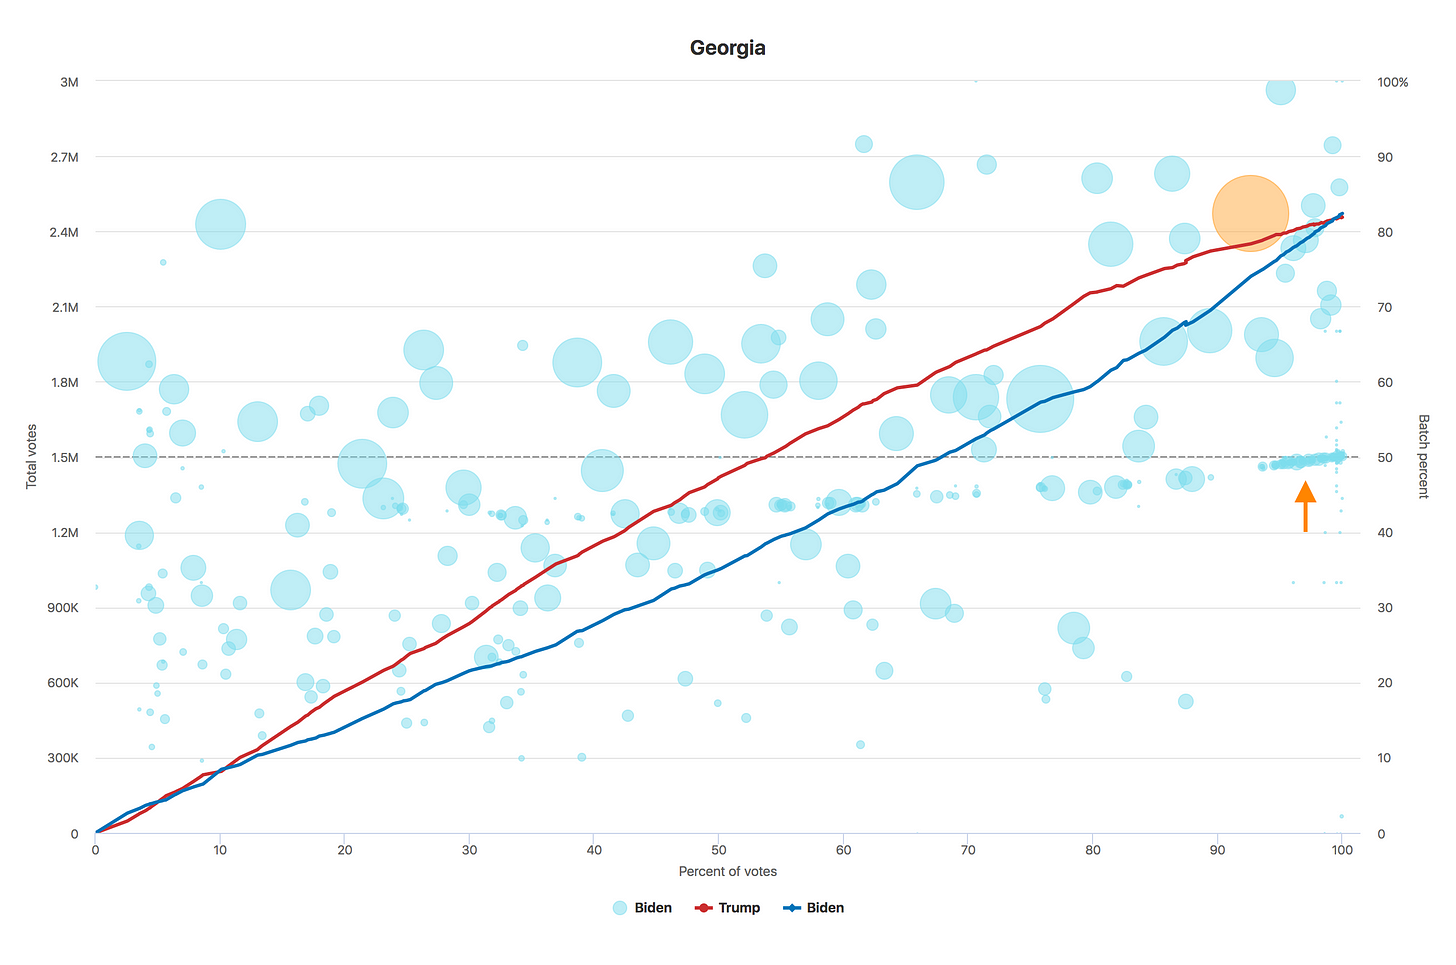 Chart of Georgia voting data over time